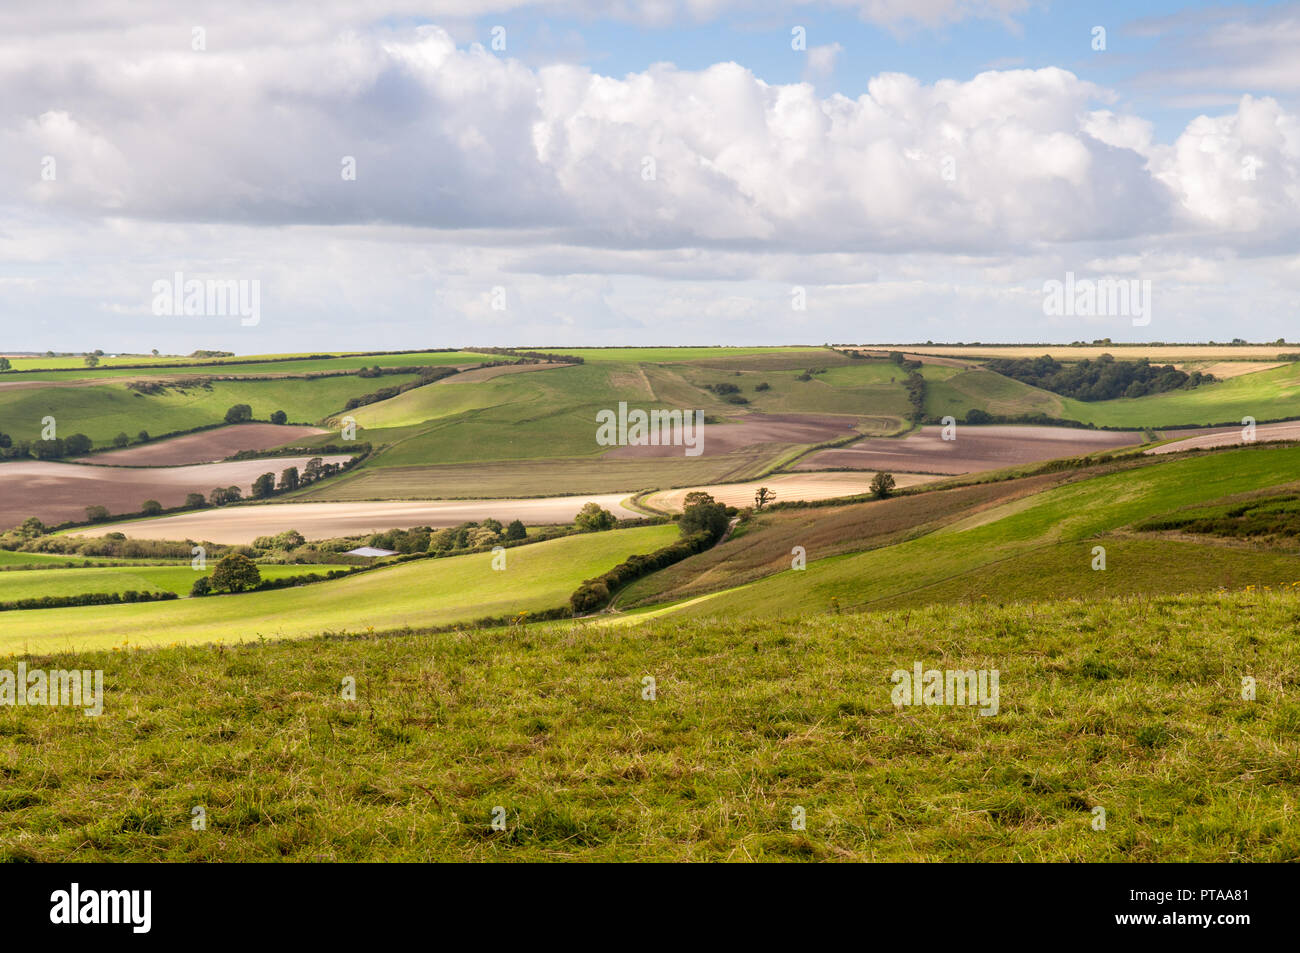 Summer sun shines on a patchwork of agricultural fields, crops and pasture near Cerne Abbas in the rolling chalk downland landscape of England's Dorse - Stock Image